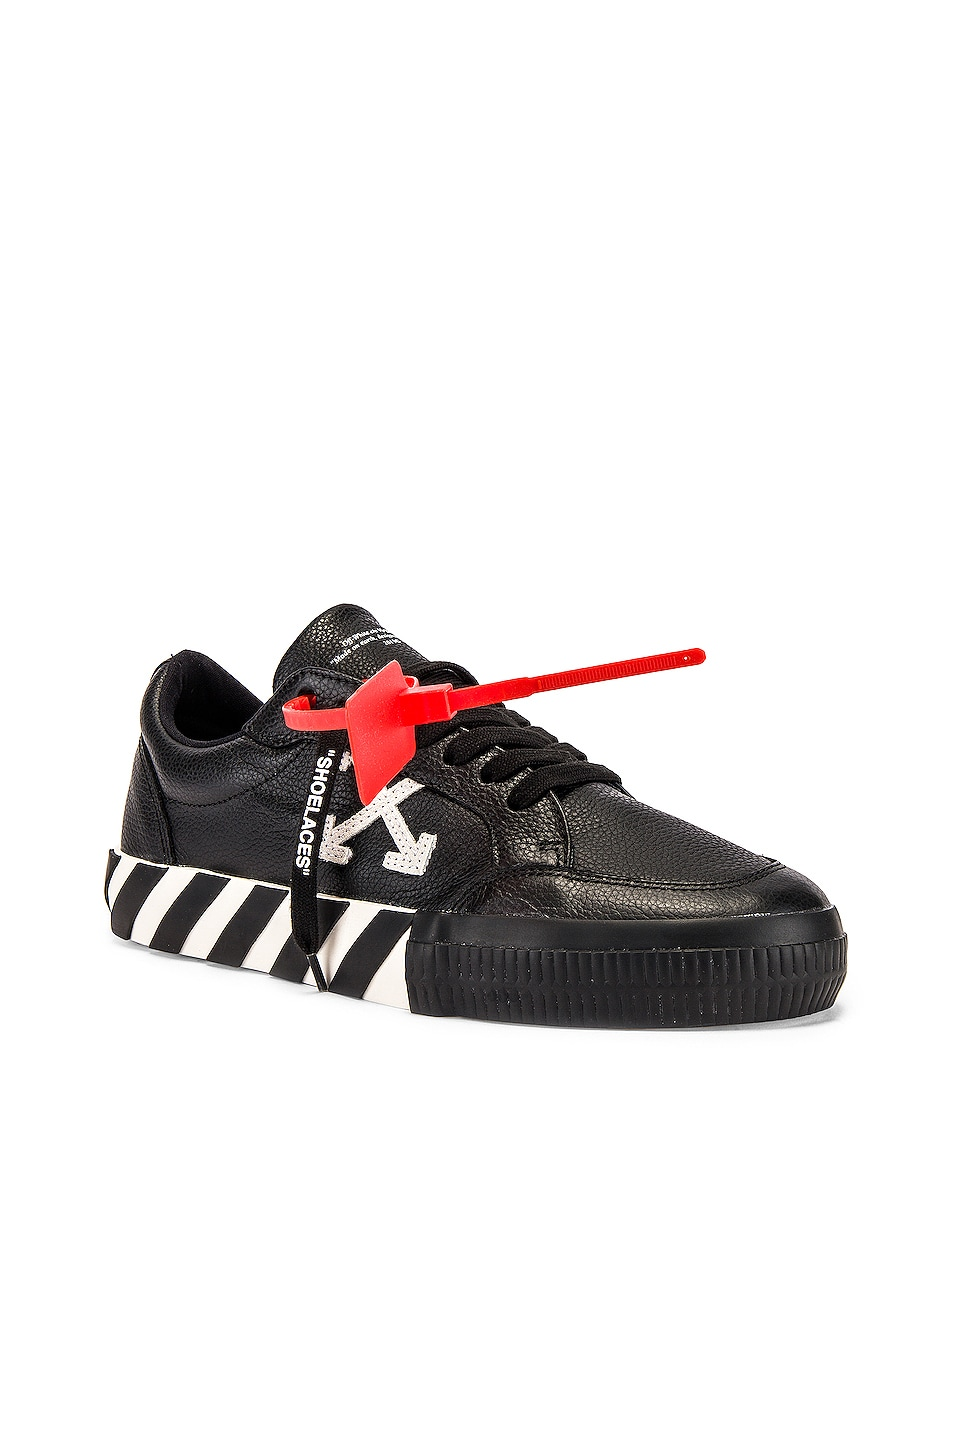 Image 1 of OFF-WHITE Low Vulcanized Sneaker in Black & White